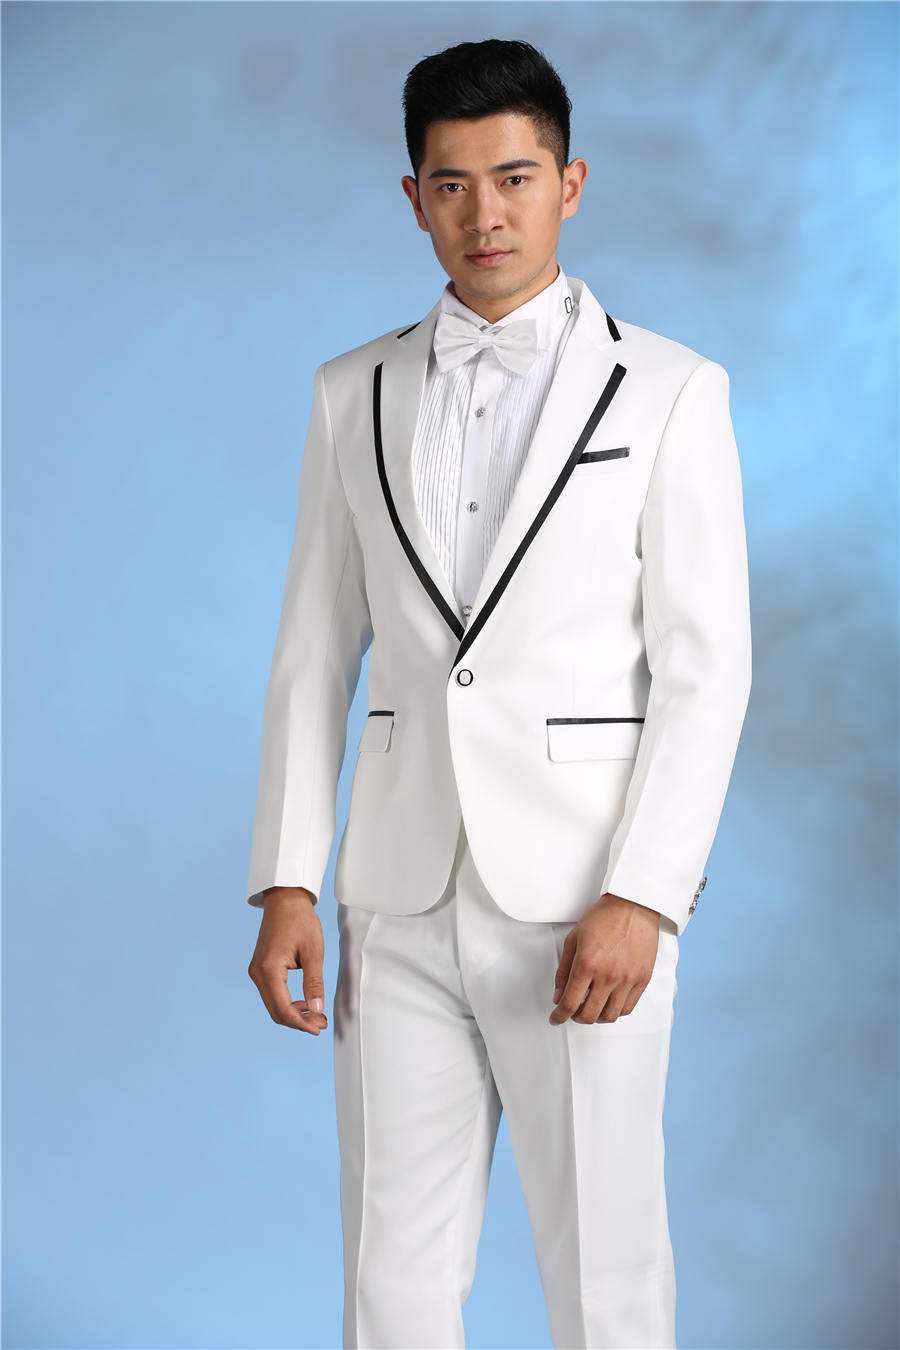 Western Fashion Latest Men Wedding Suits Collection One of the famous brands that is working on grooms-wear is Stephen Bishop, giving the classic and mind-blowing western dresses for grooms. The suits fashion is not only embraced in American regions, and English countries but also in Asian countries as well as in Pakistan, India, etc.